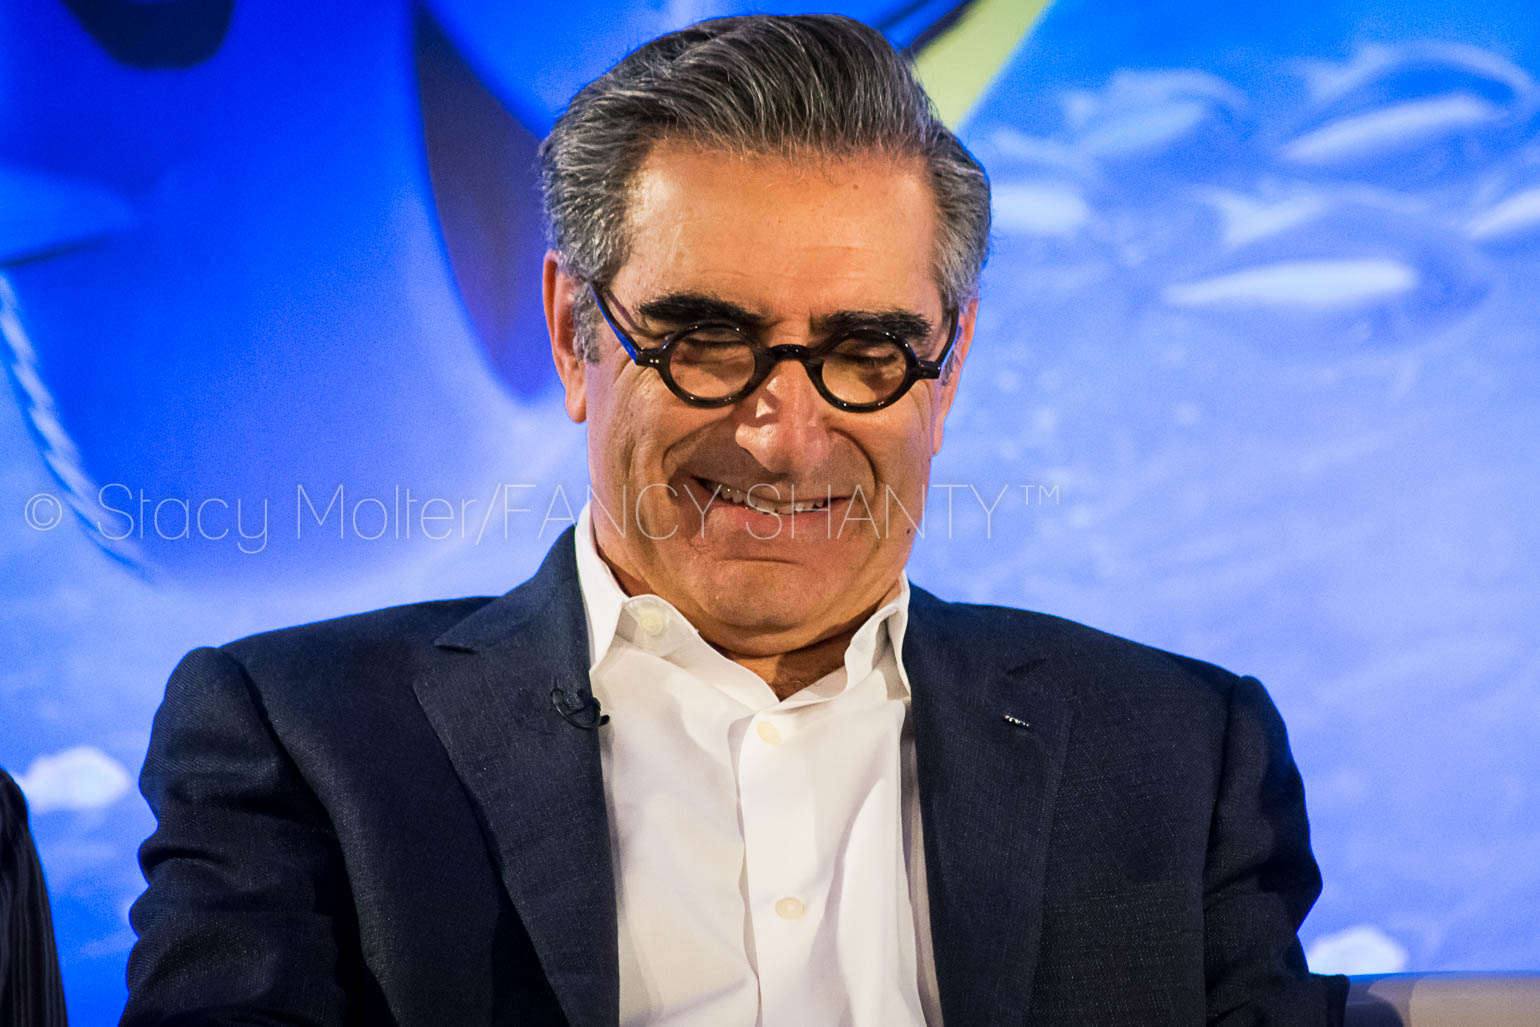 Eugene Levy - Finding Dory Press Conference